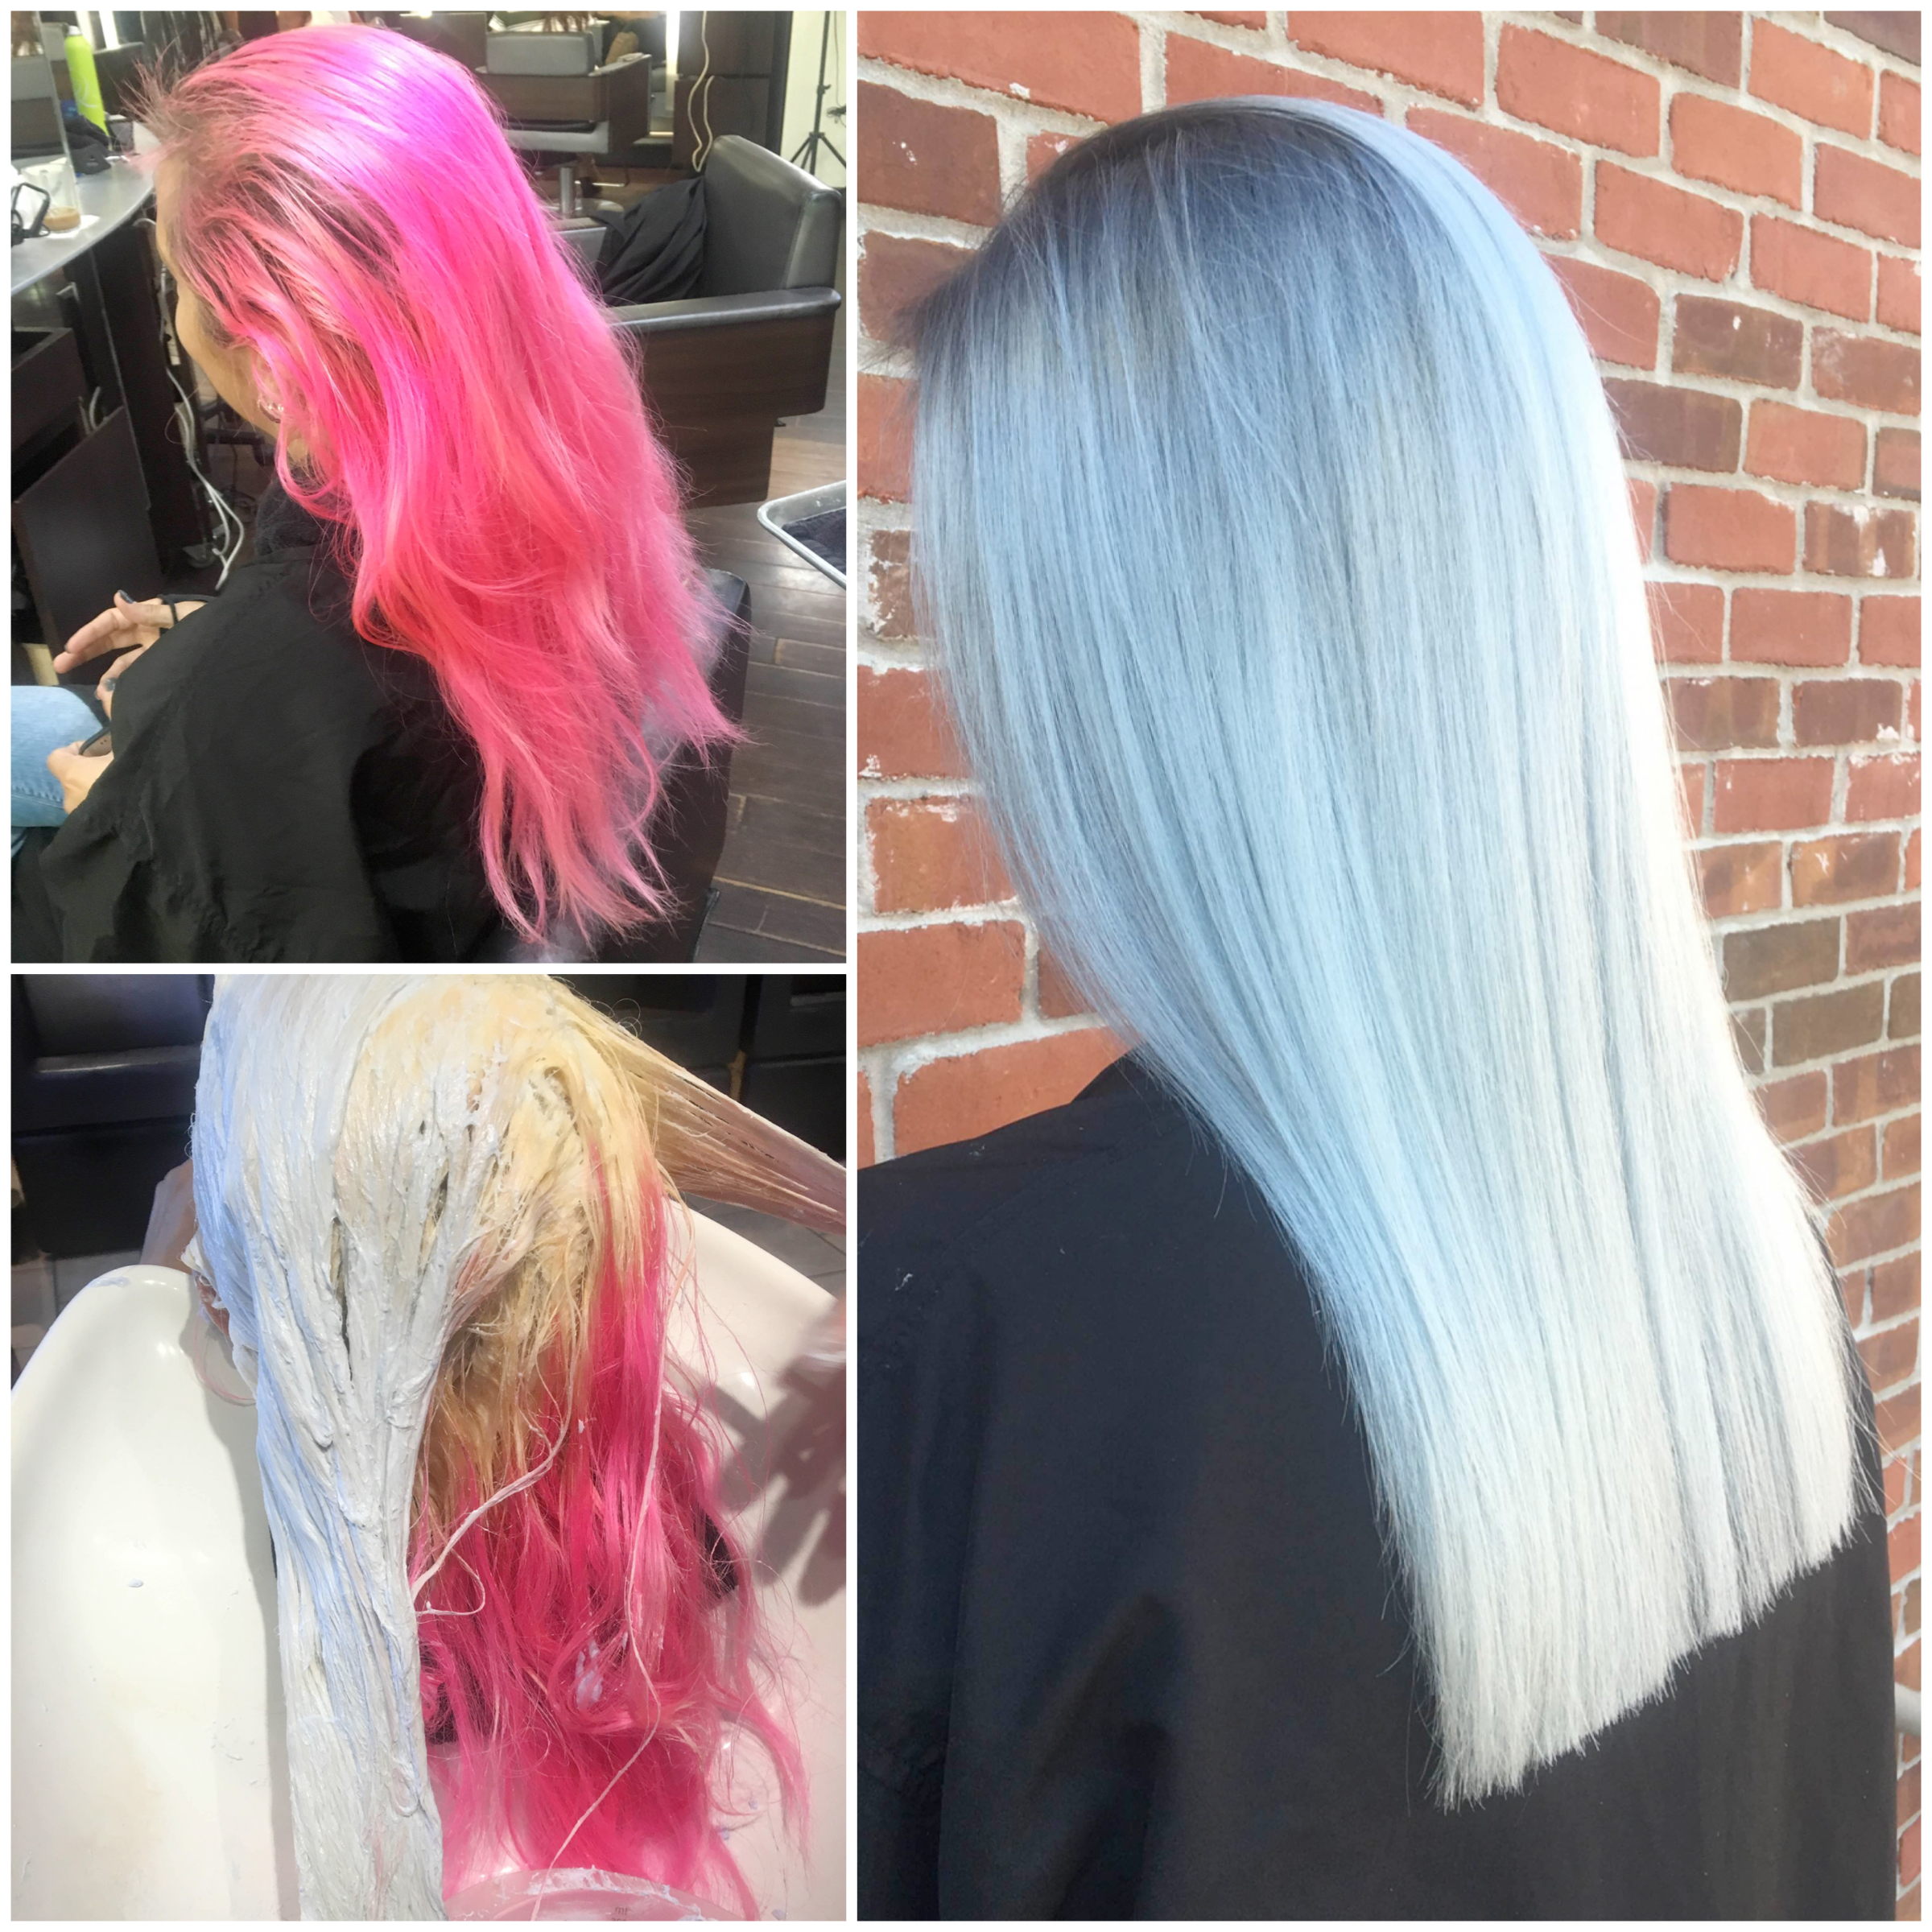 Makeover: Hot Pink To Ocean Storm